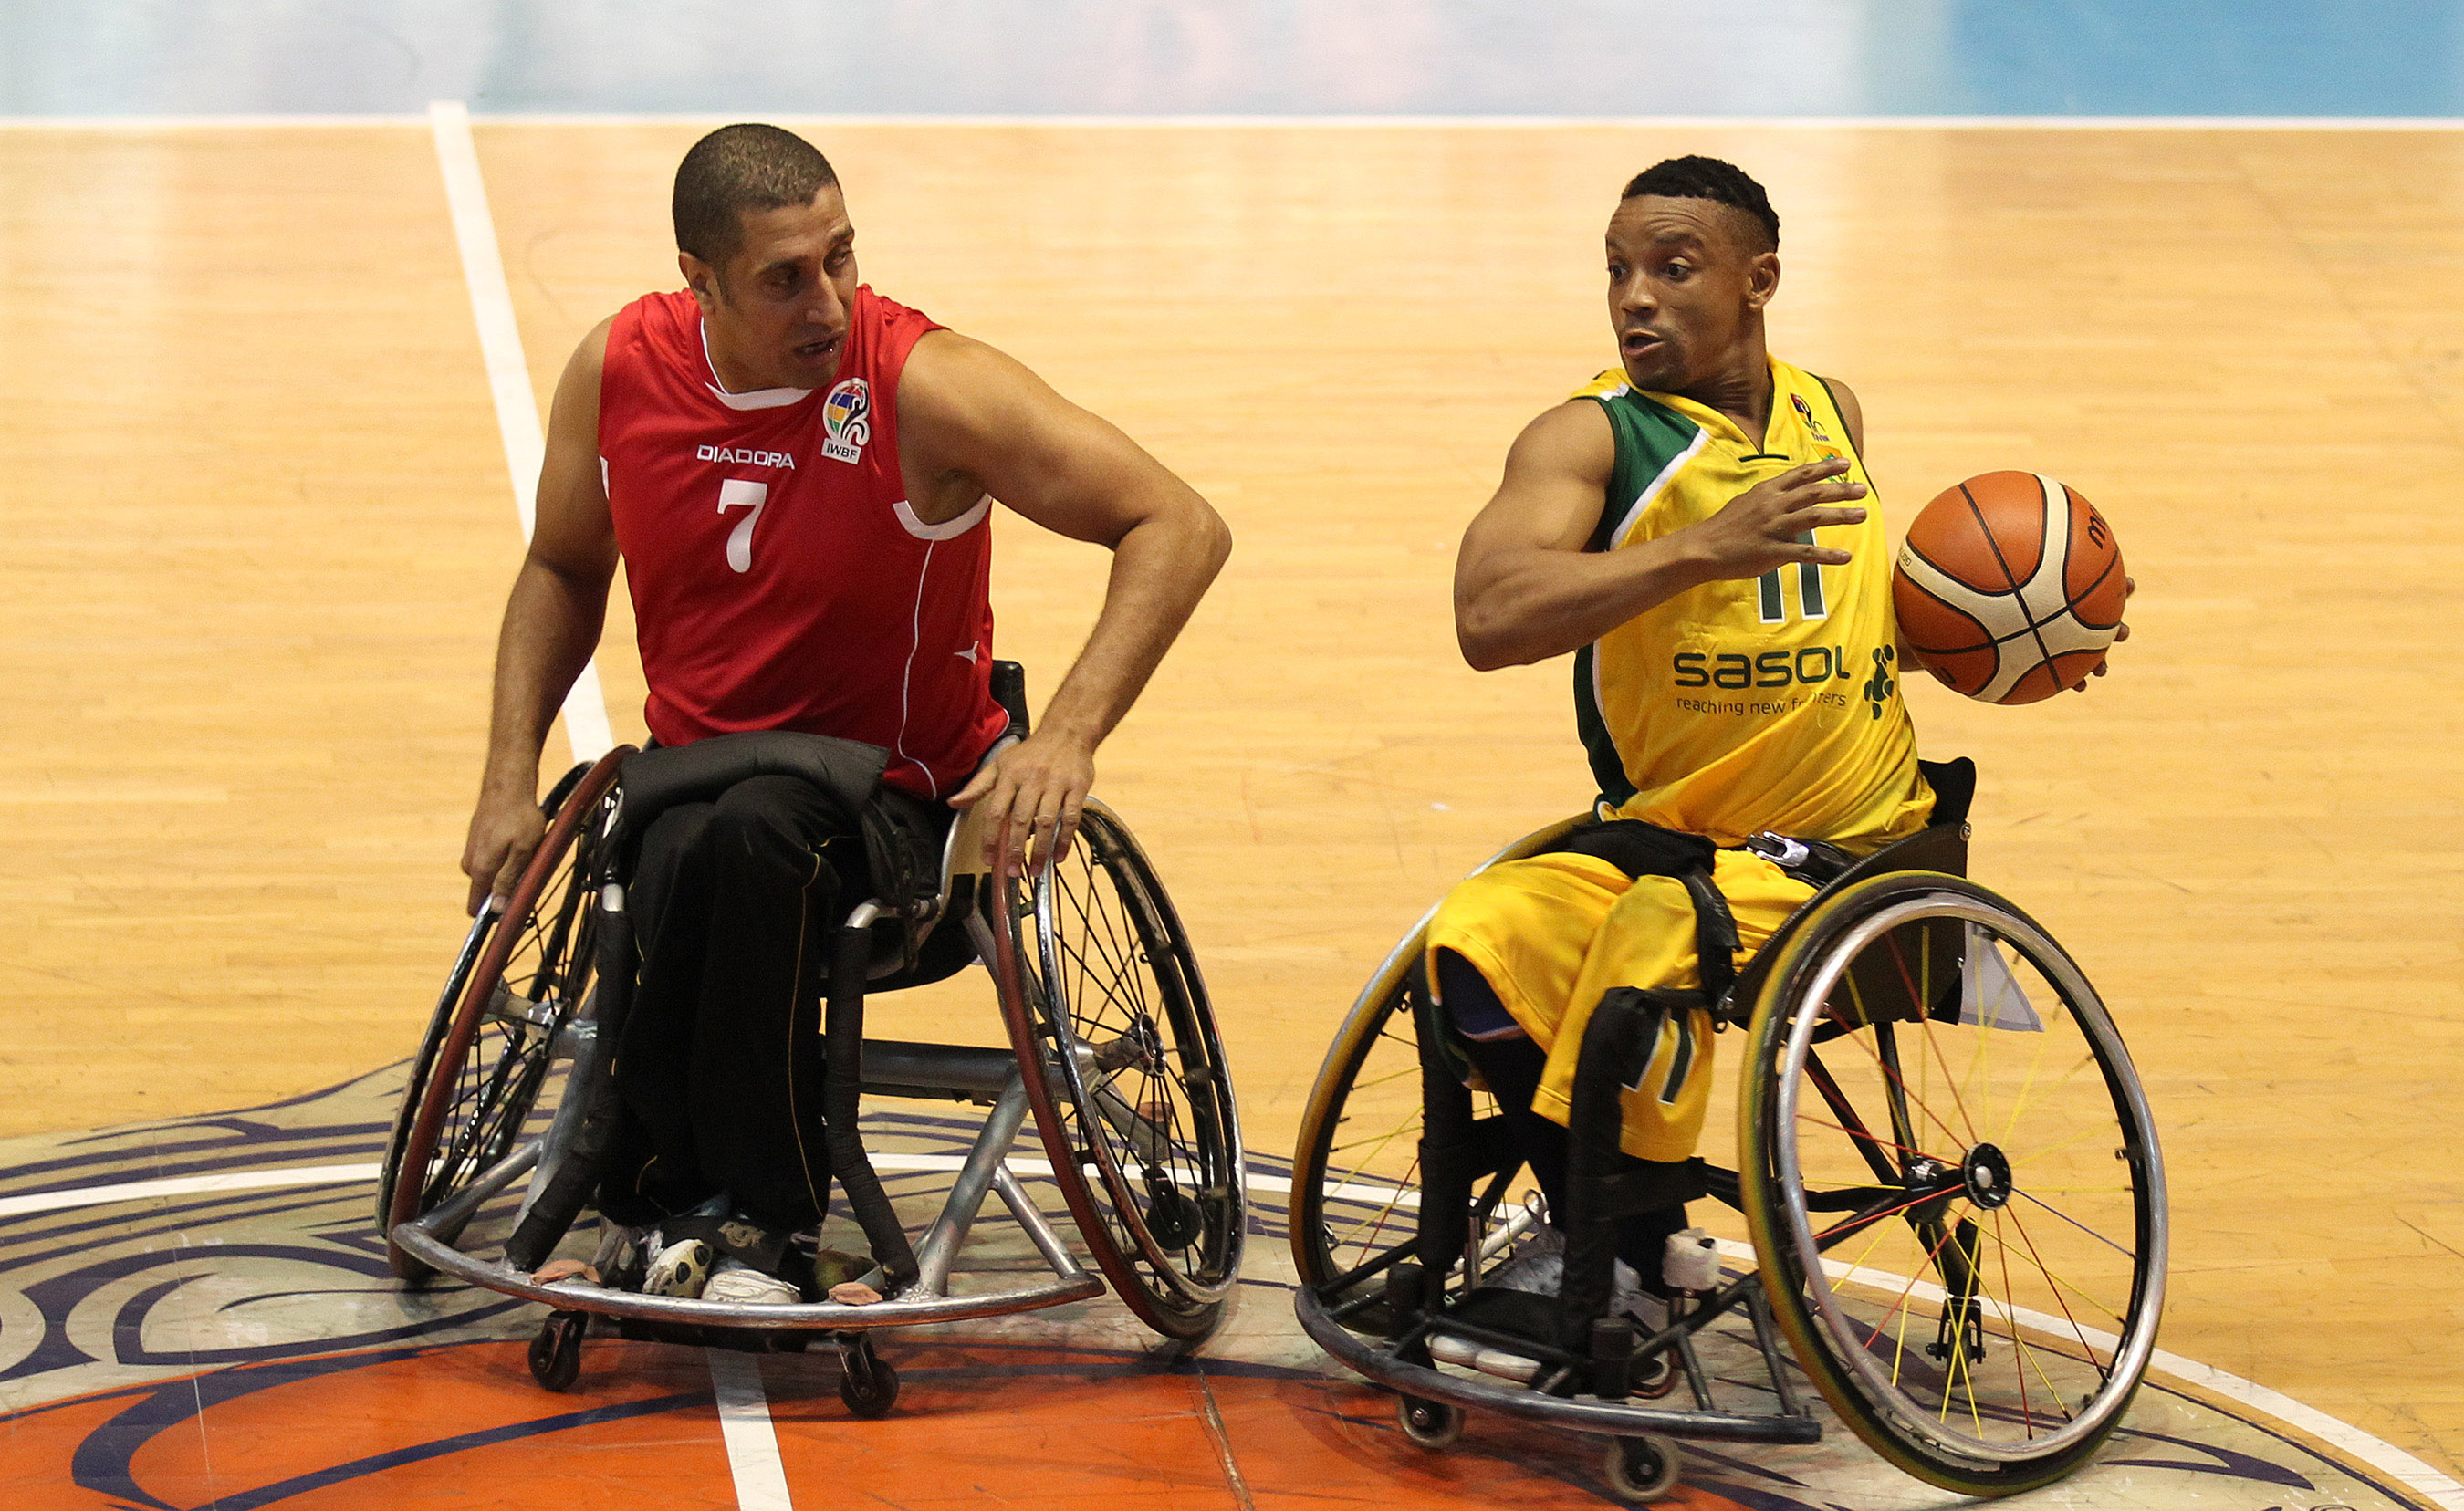 Amawheelaboys march on with second win in Algeria